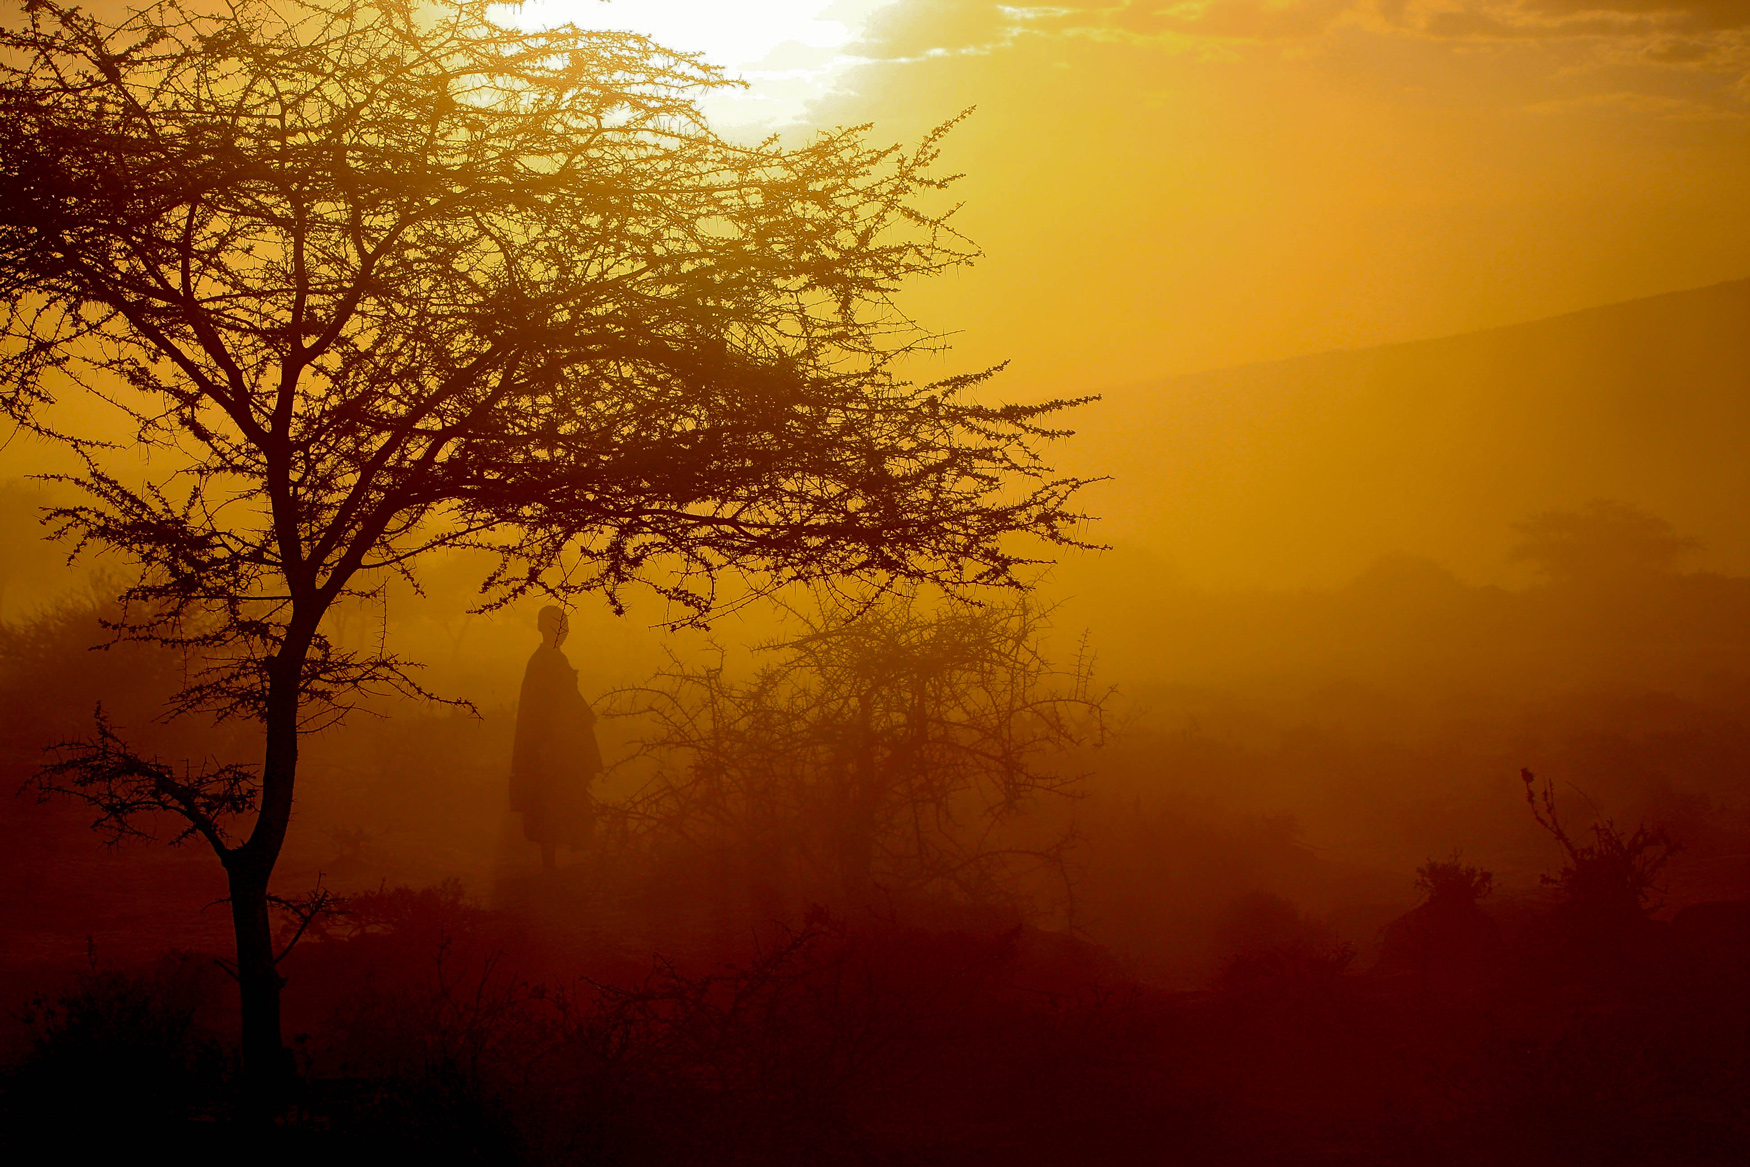 silhouetted masai women and tree in Tanzania Africa - sunset